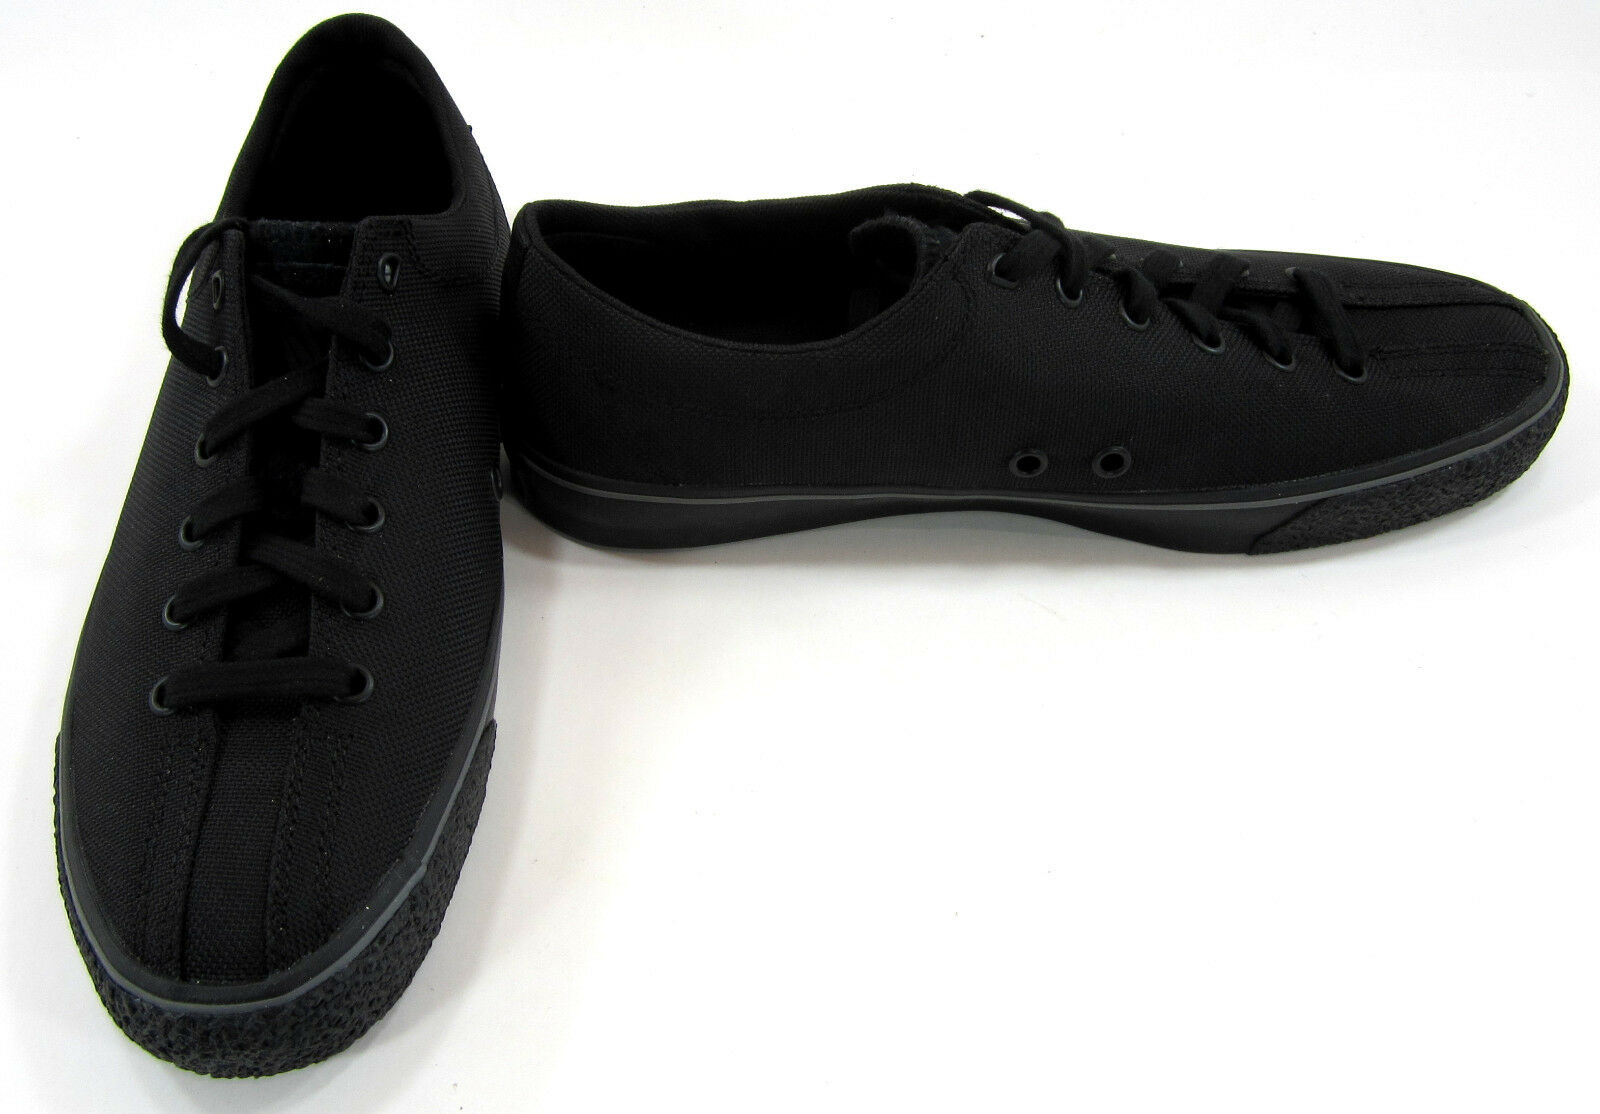 K-Swiss shoes Casual Canvas Lo Chucks Black Sneakers Size 9